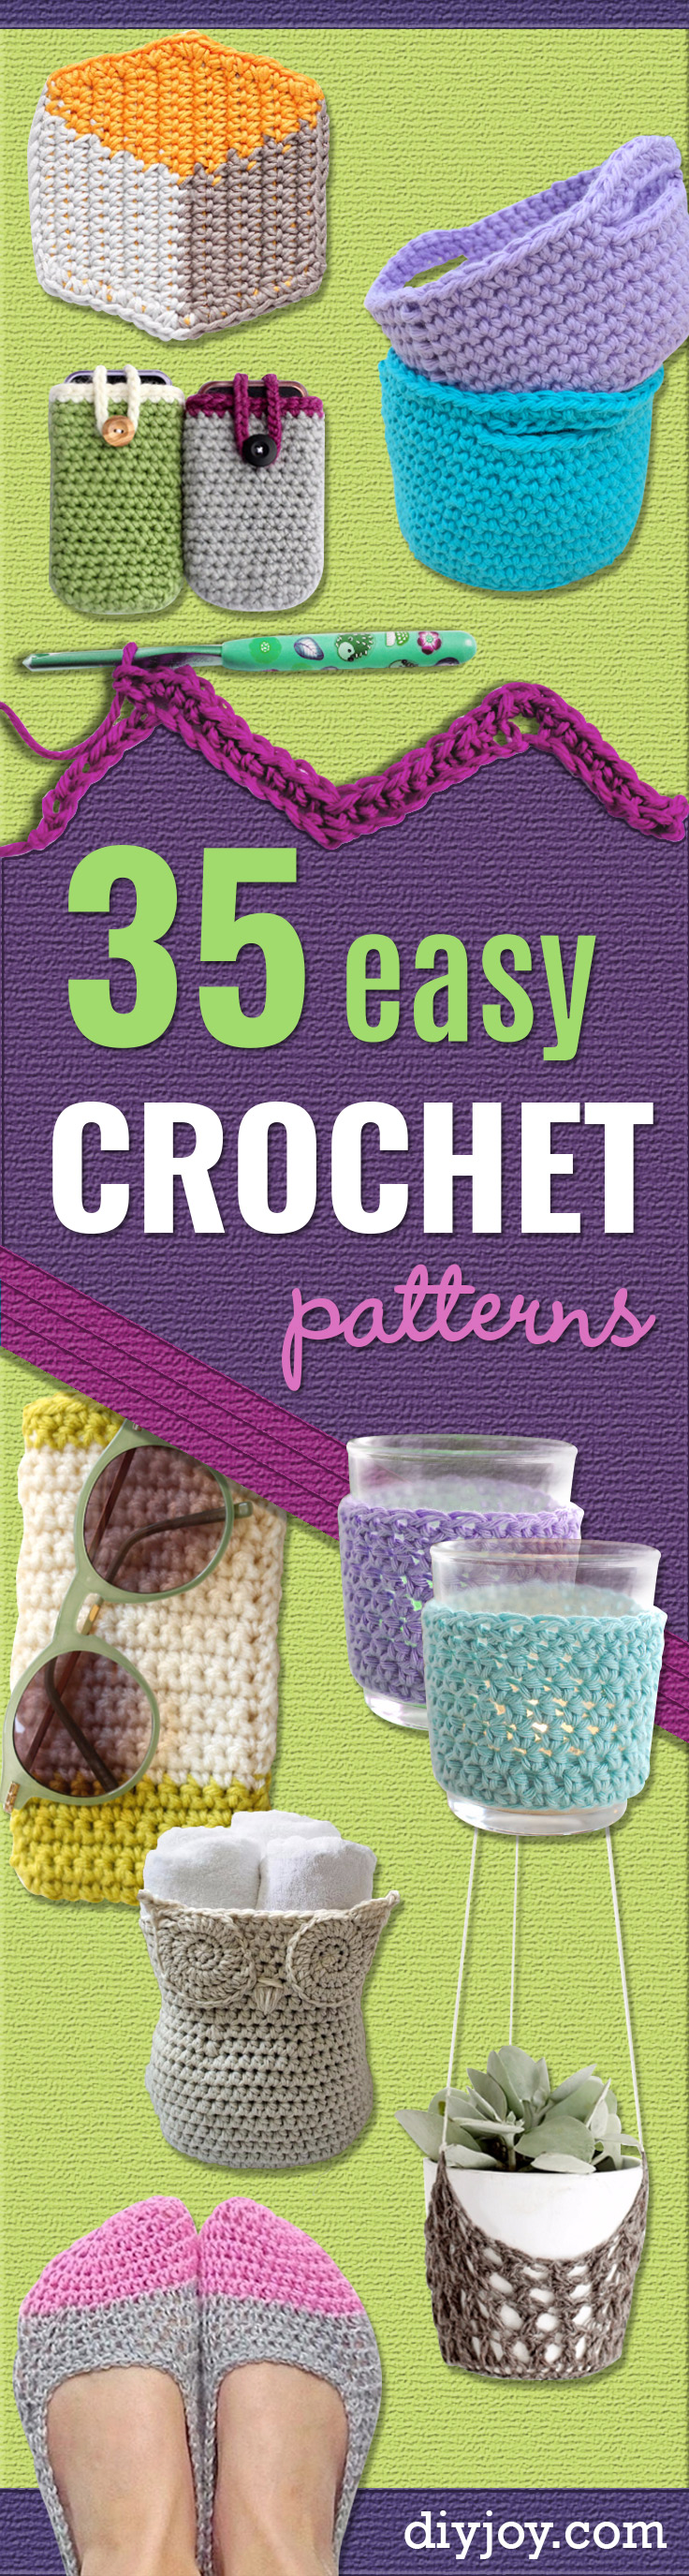 35 easy crochet patterns for Easy crafts for beginners